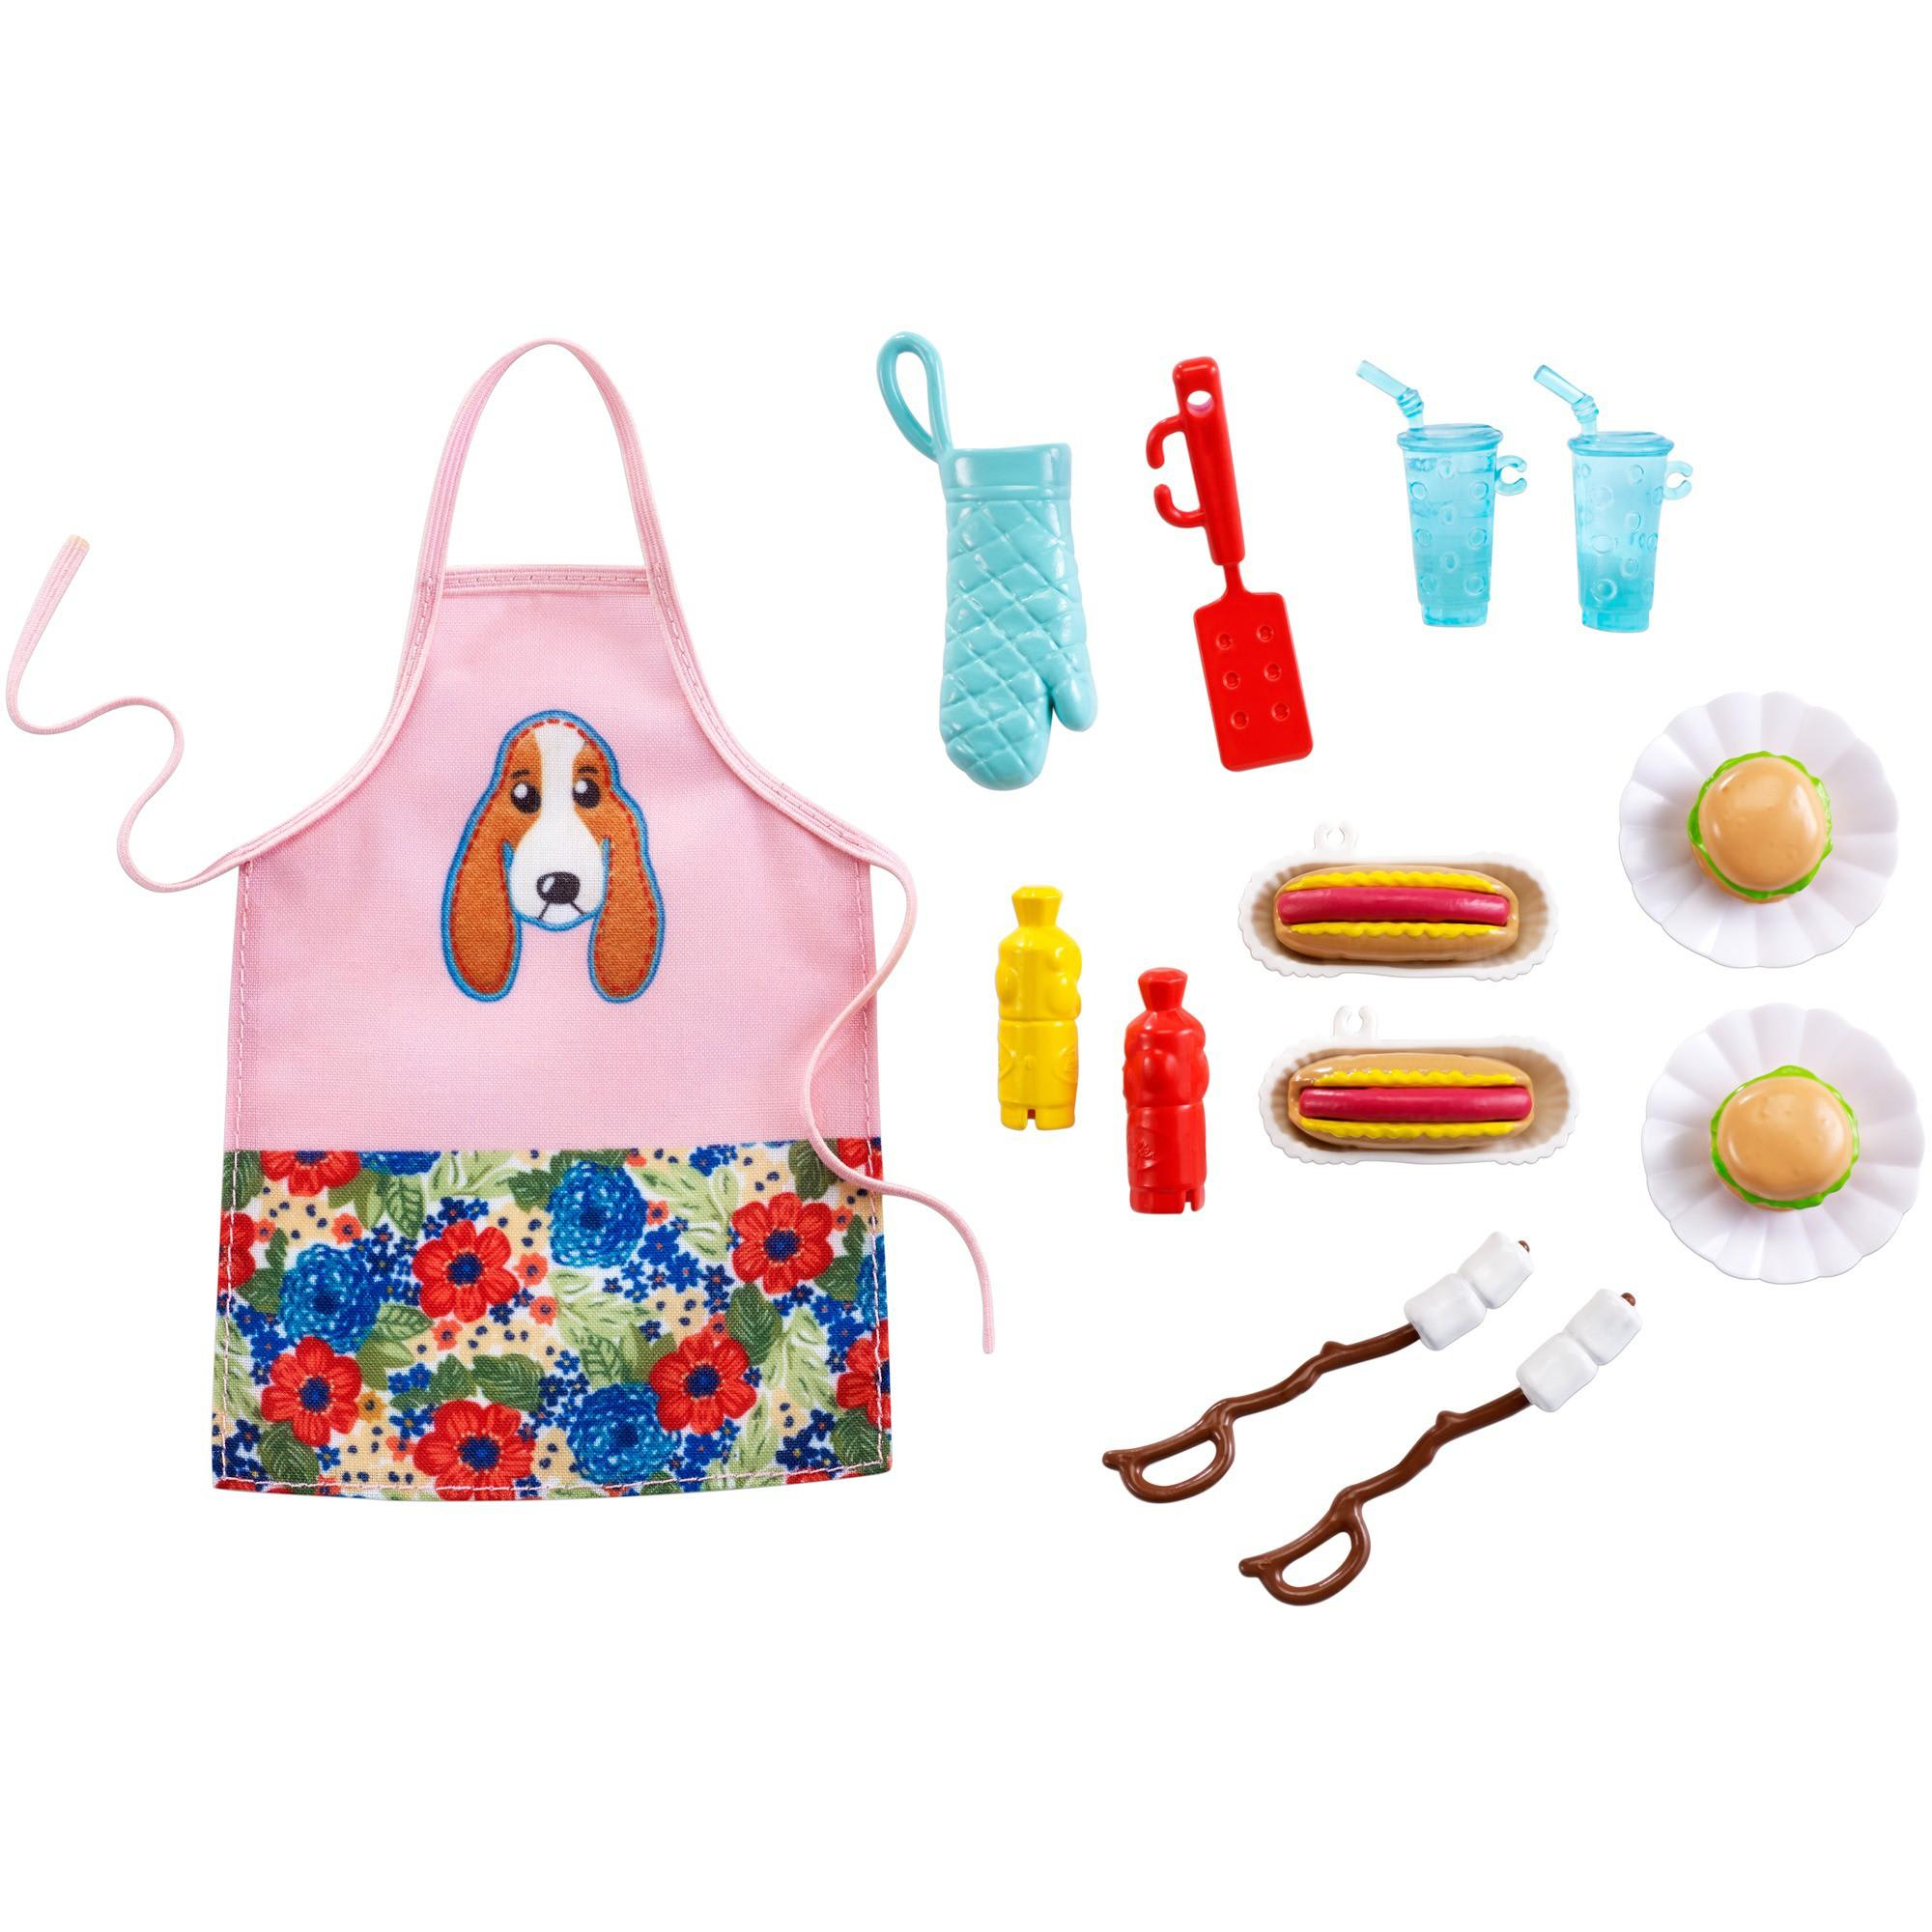 Ree Drummond Barbie set BBQ